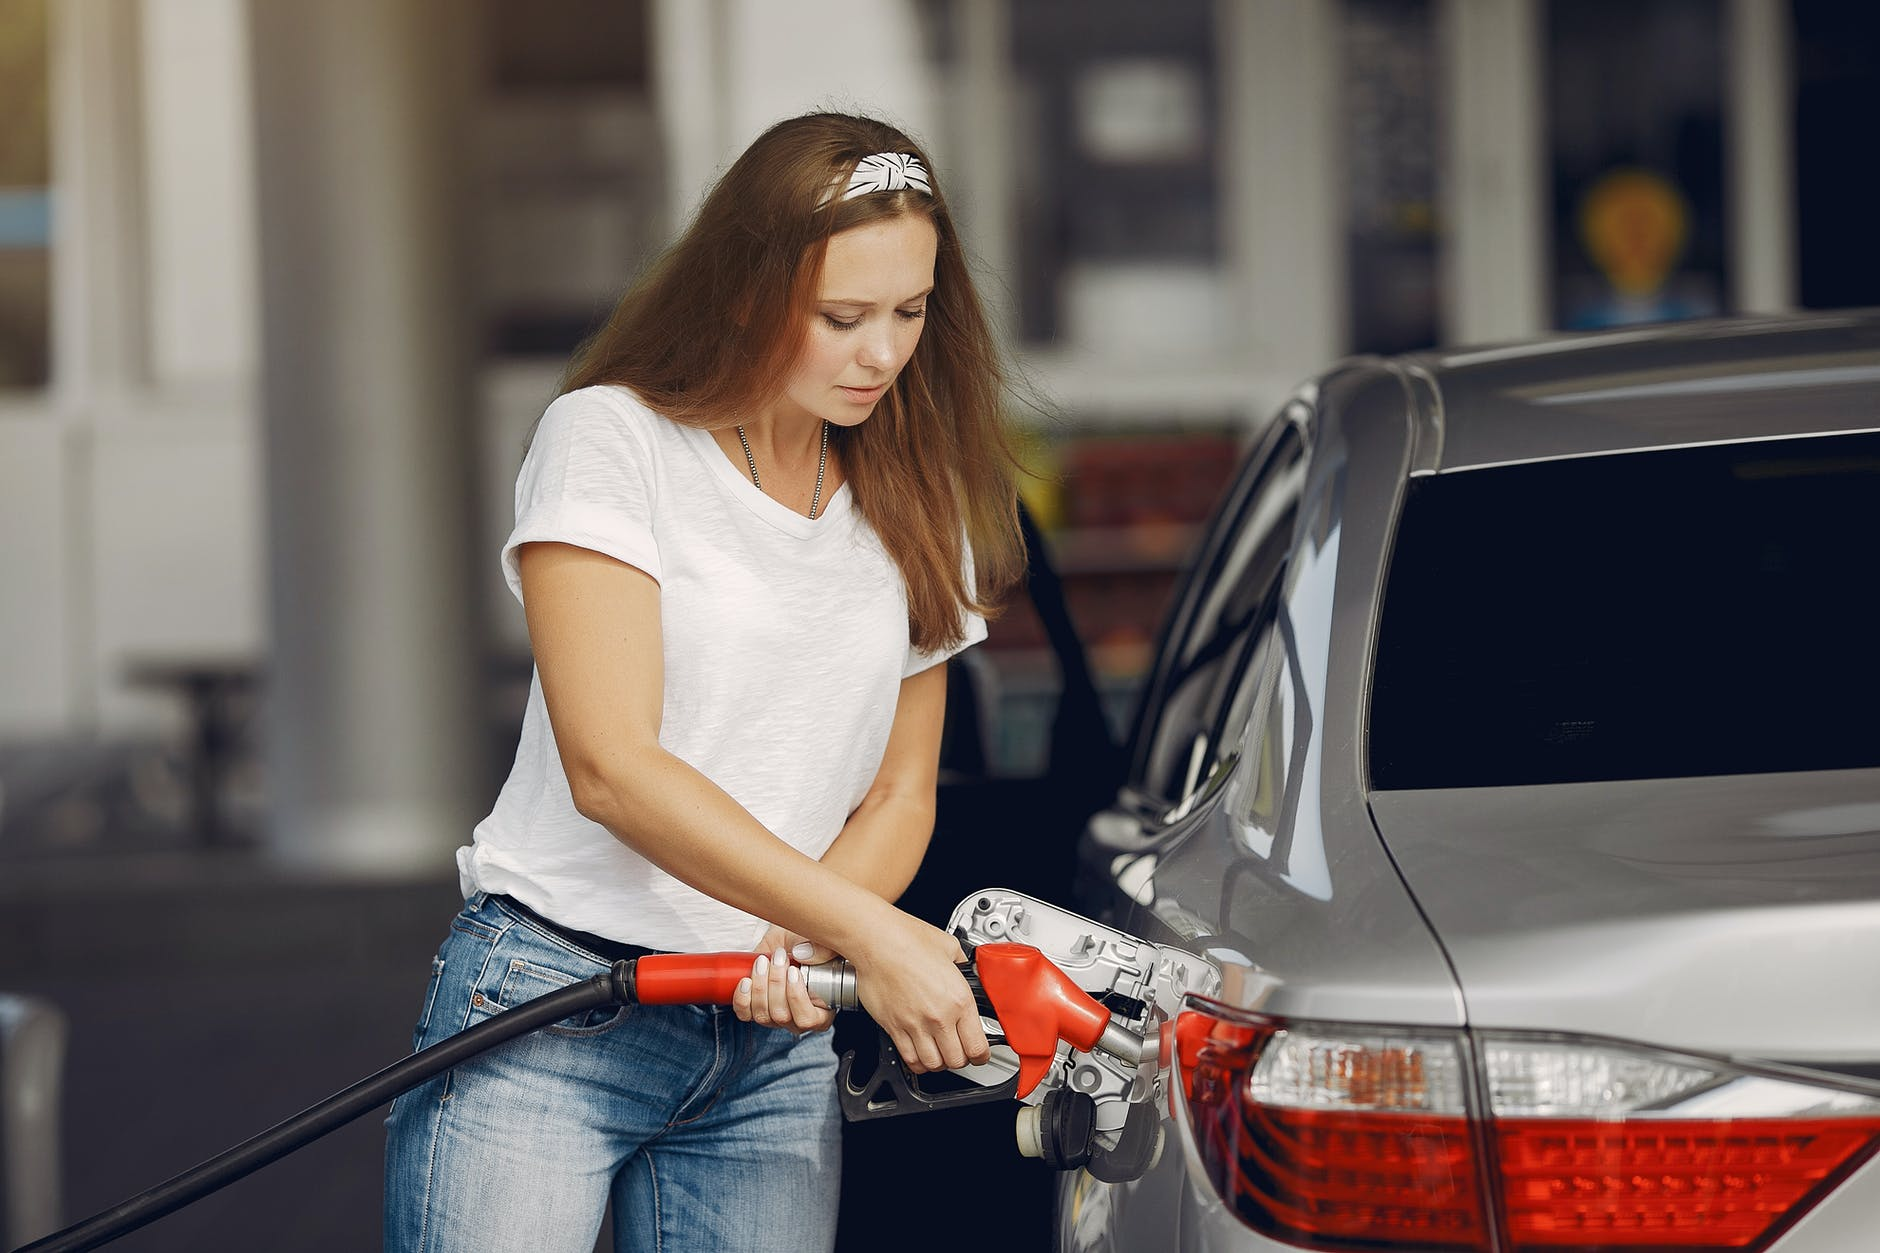 focused young woman refueling car